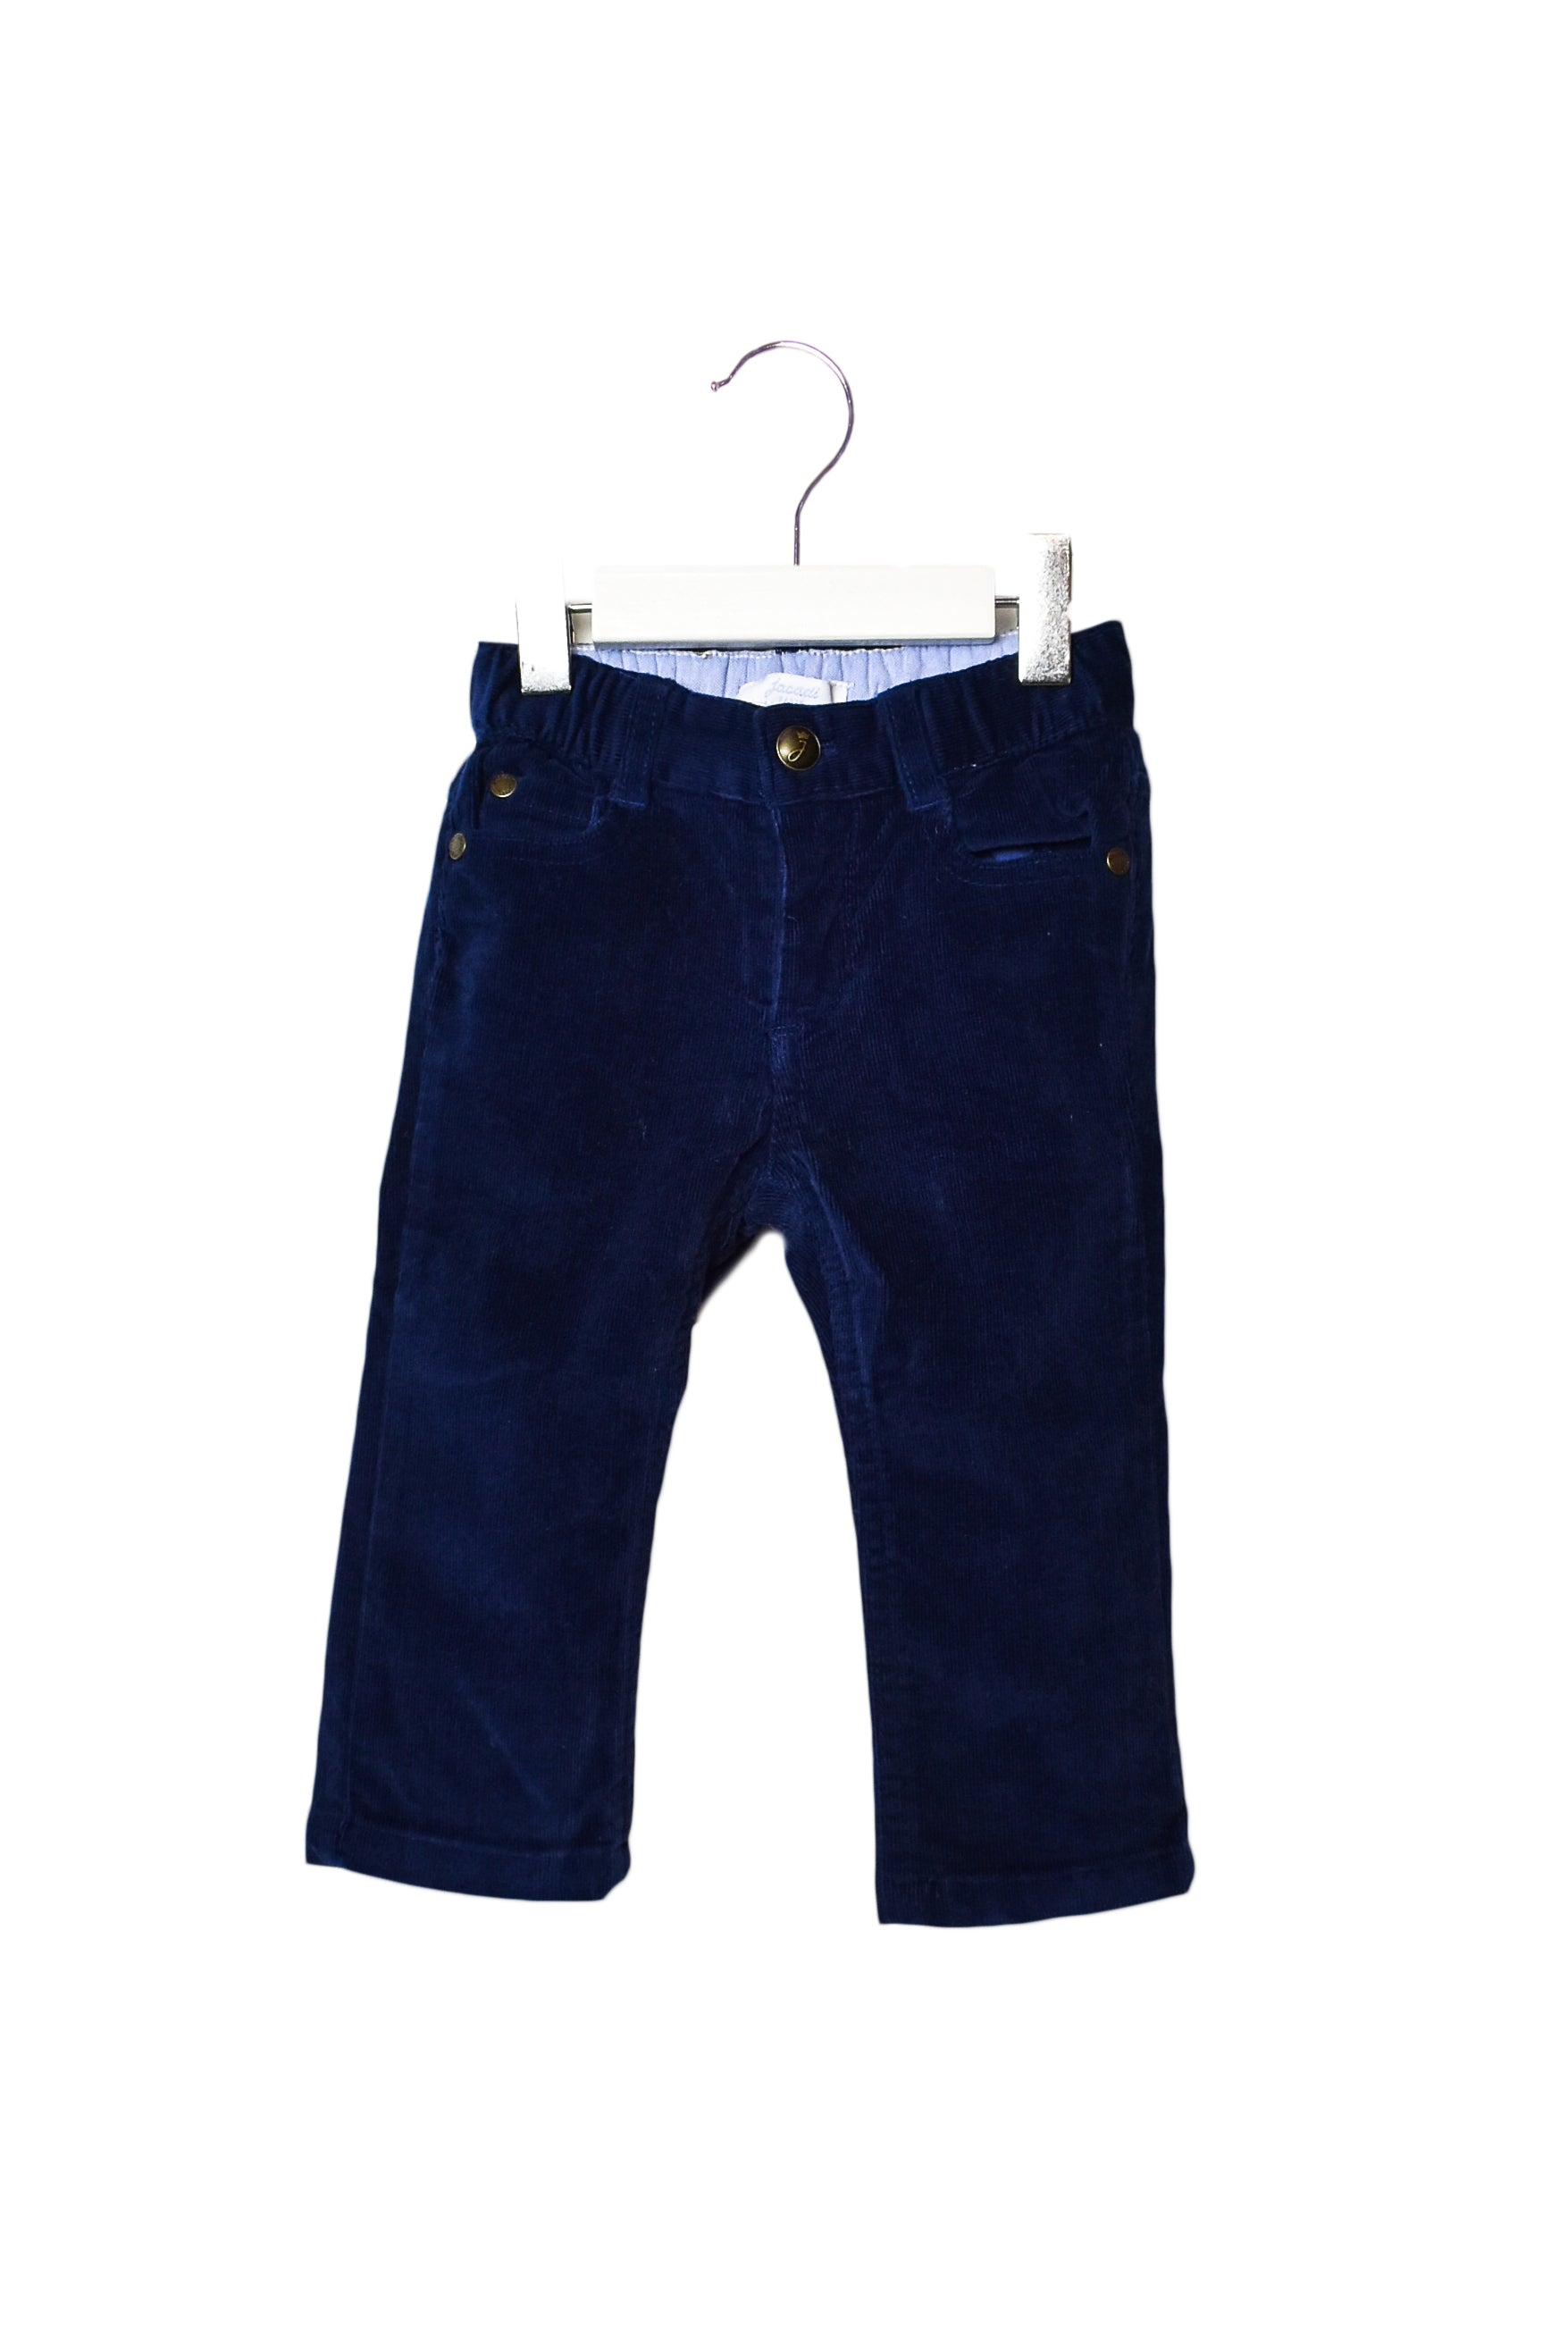 10008599 Jacadi Baby~Jeans 12M at Retykle